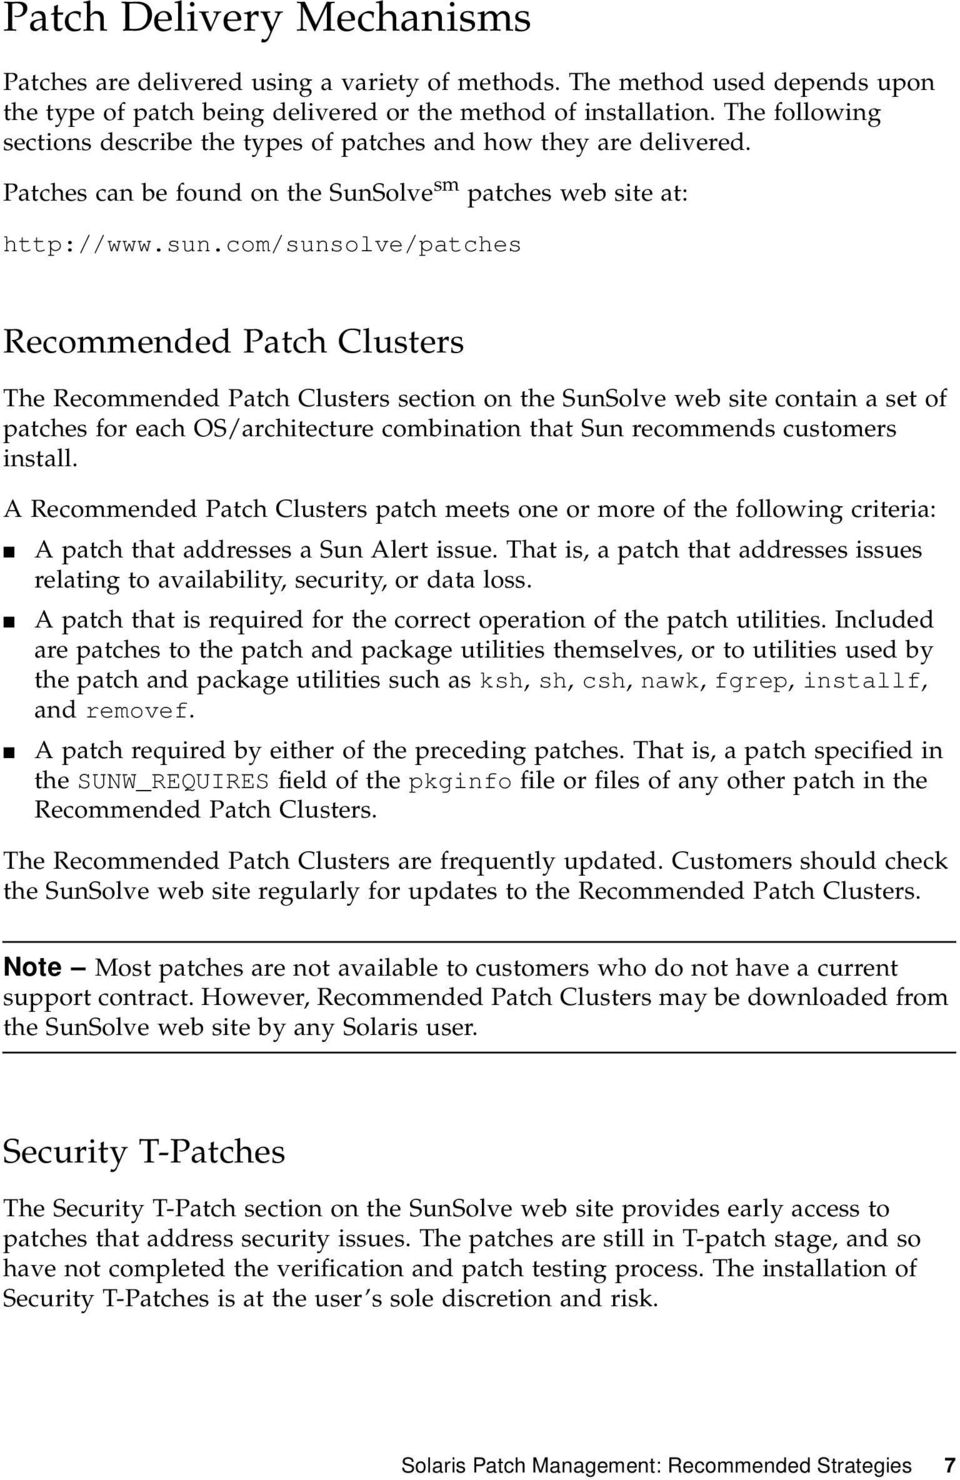 com/sunsolve/patches Recommended Patch Clusters The Recommended Patch Clusters section on the SunSolve web site contain a set of patches for each OS/architecture combination that Sun recommends